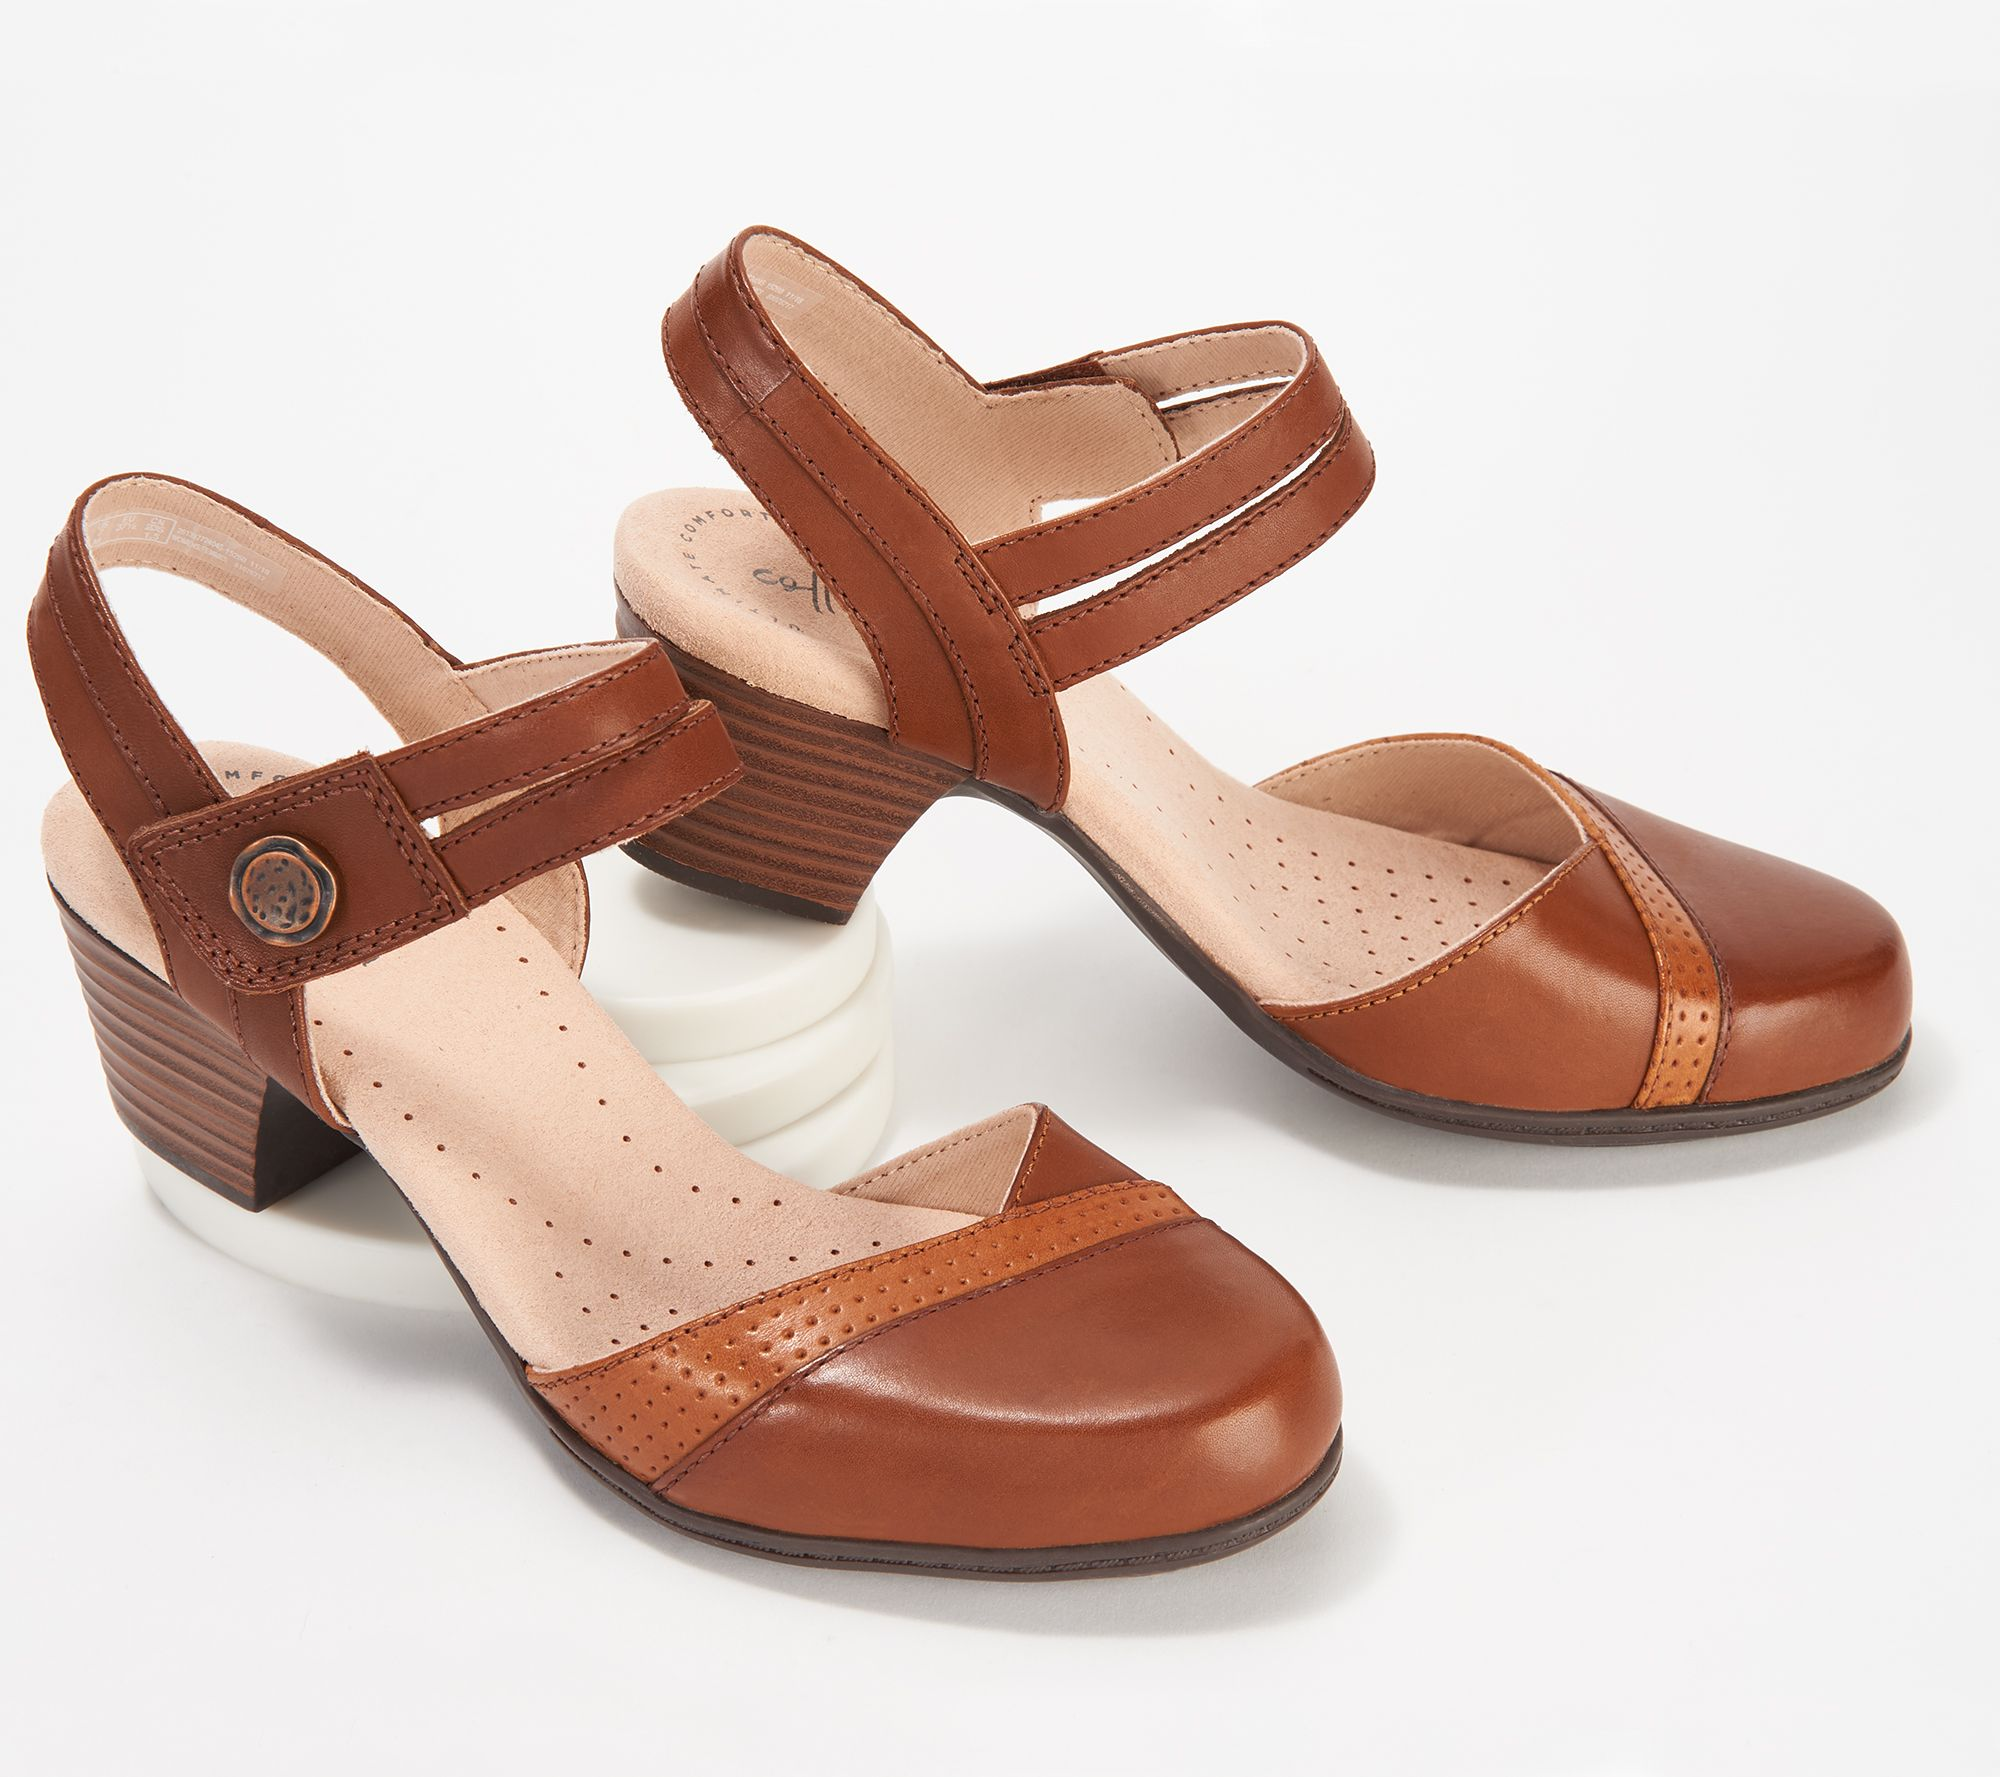 804efe01e Clarks Collection Leather Heeled Mary Janes - Valarie Rally - Page 1 —  QVC.com